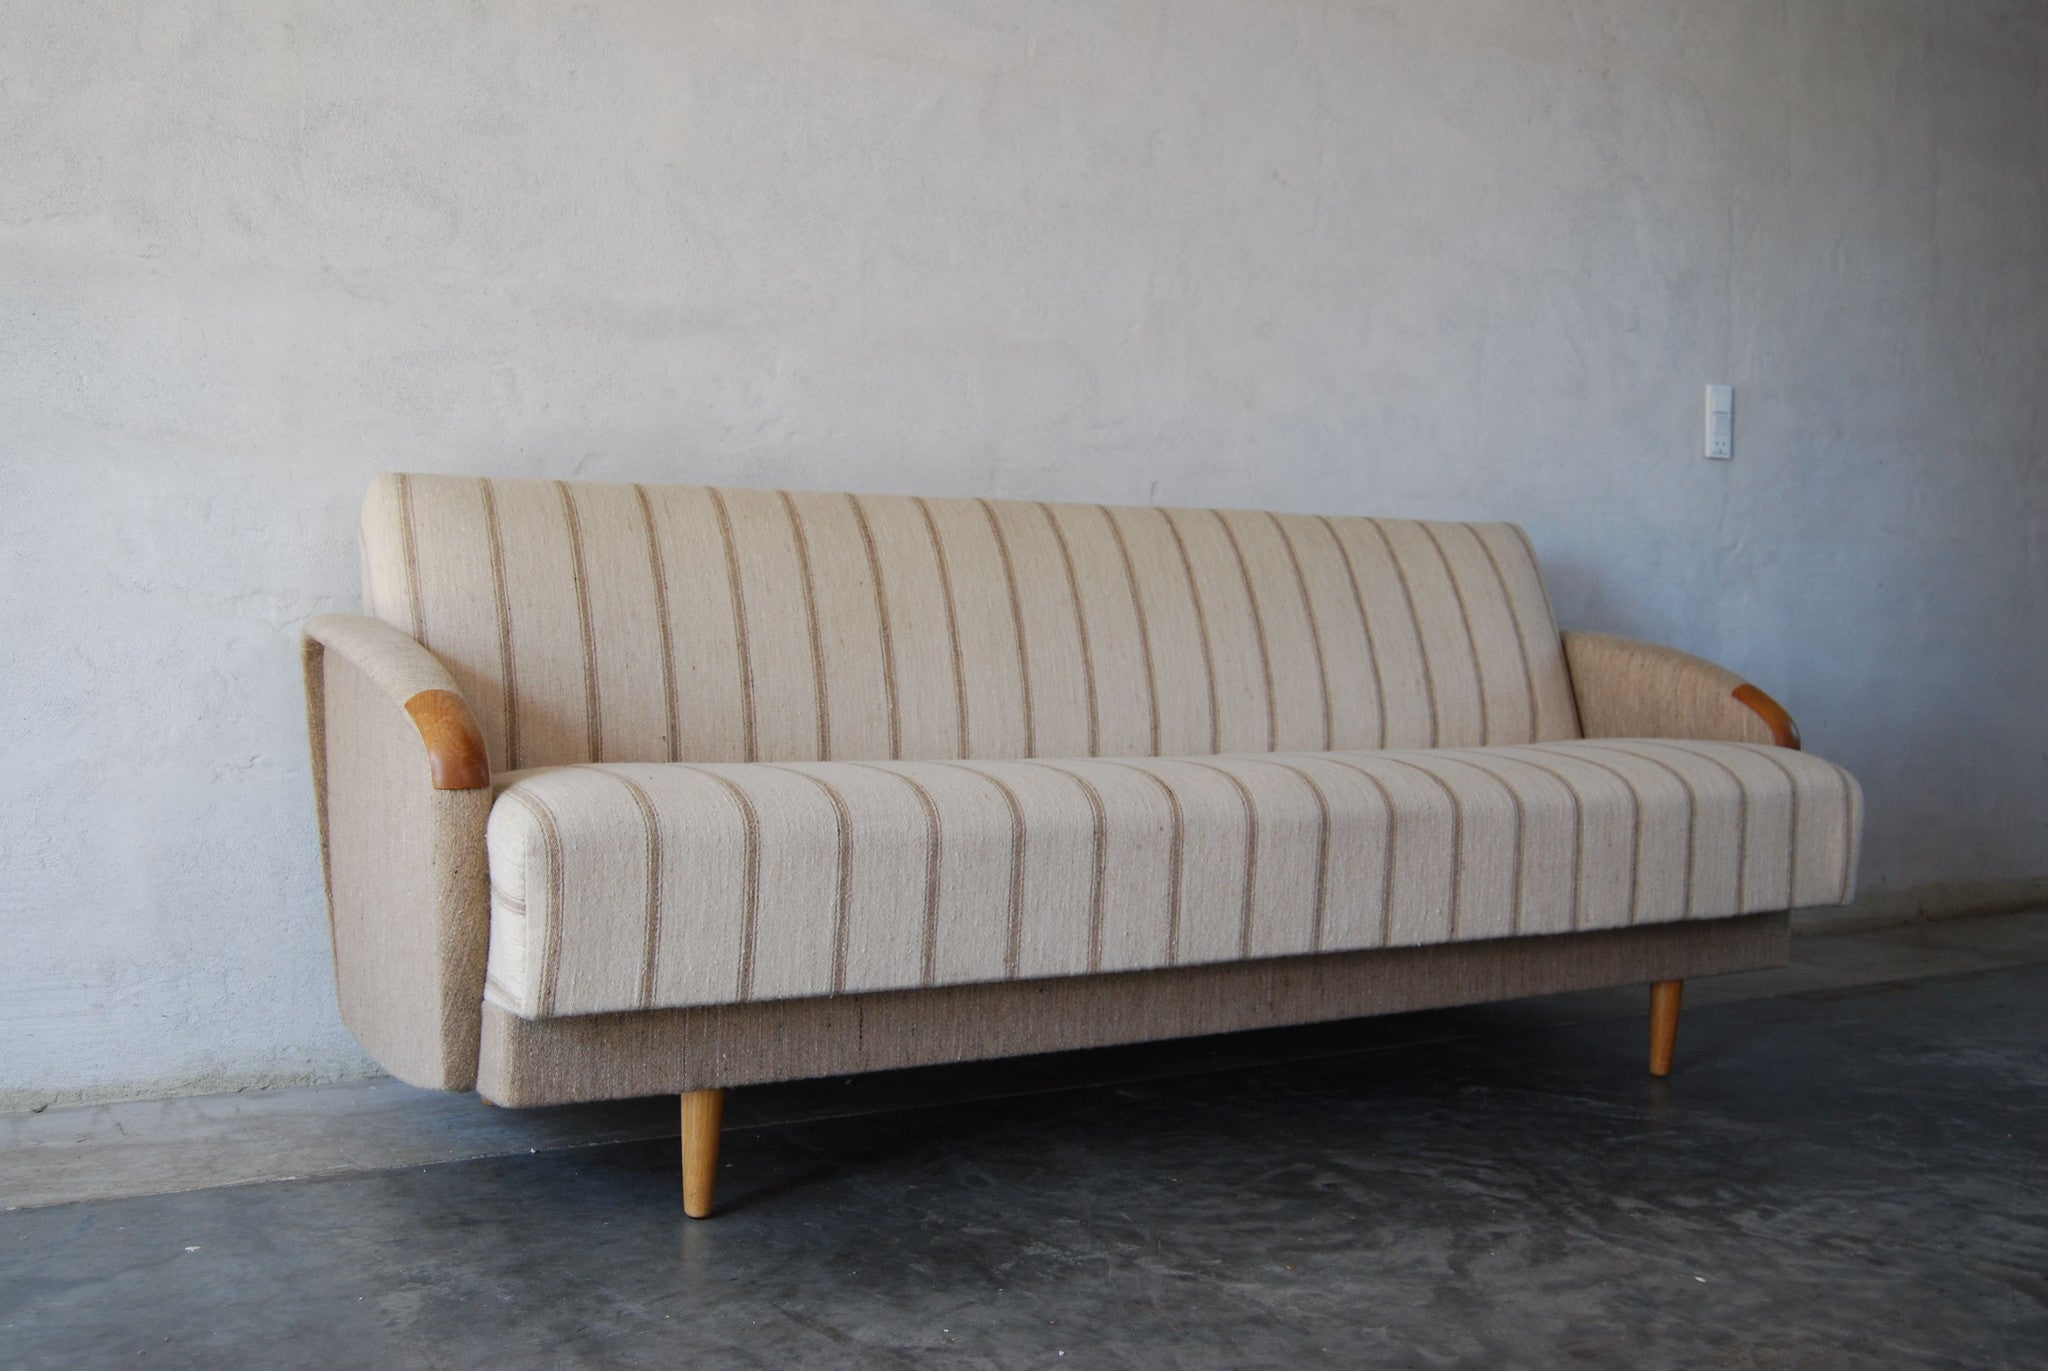 Sofabed with teak paws/oak legs